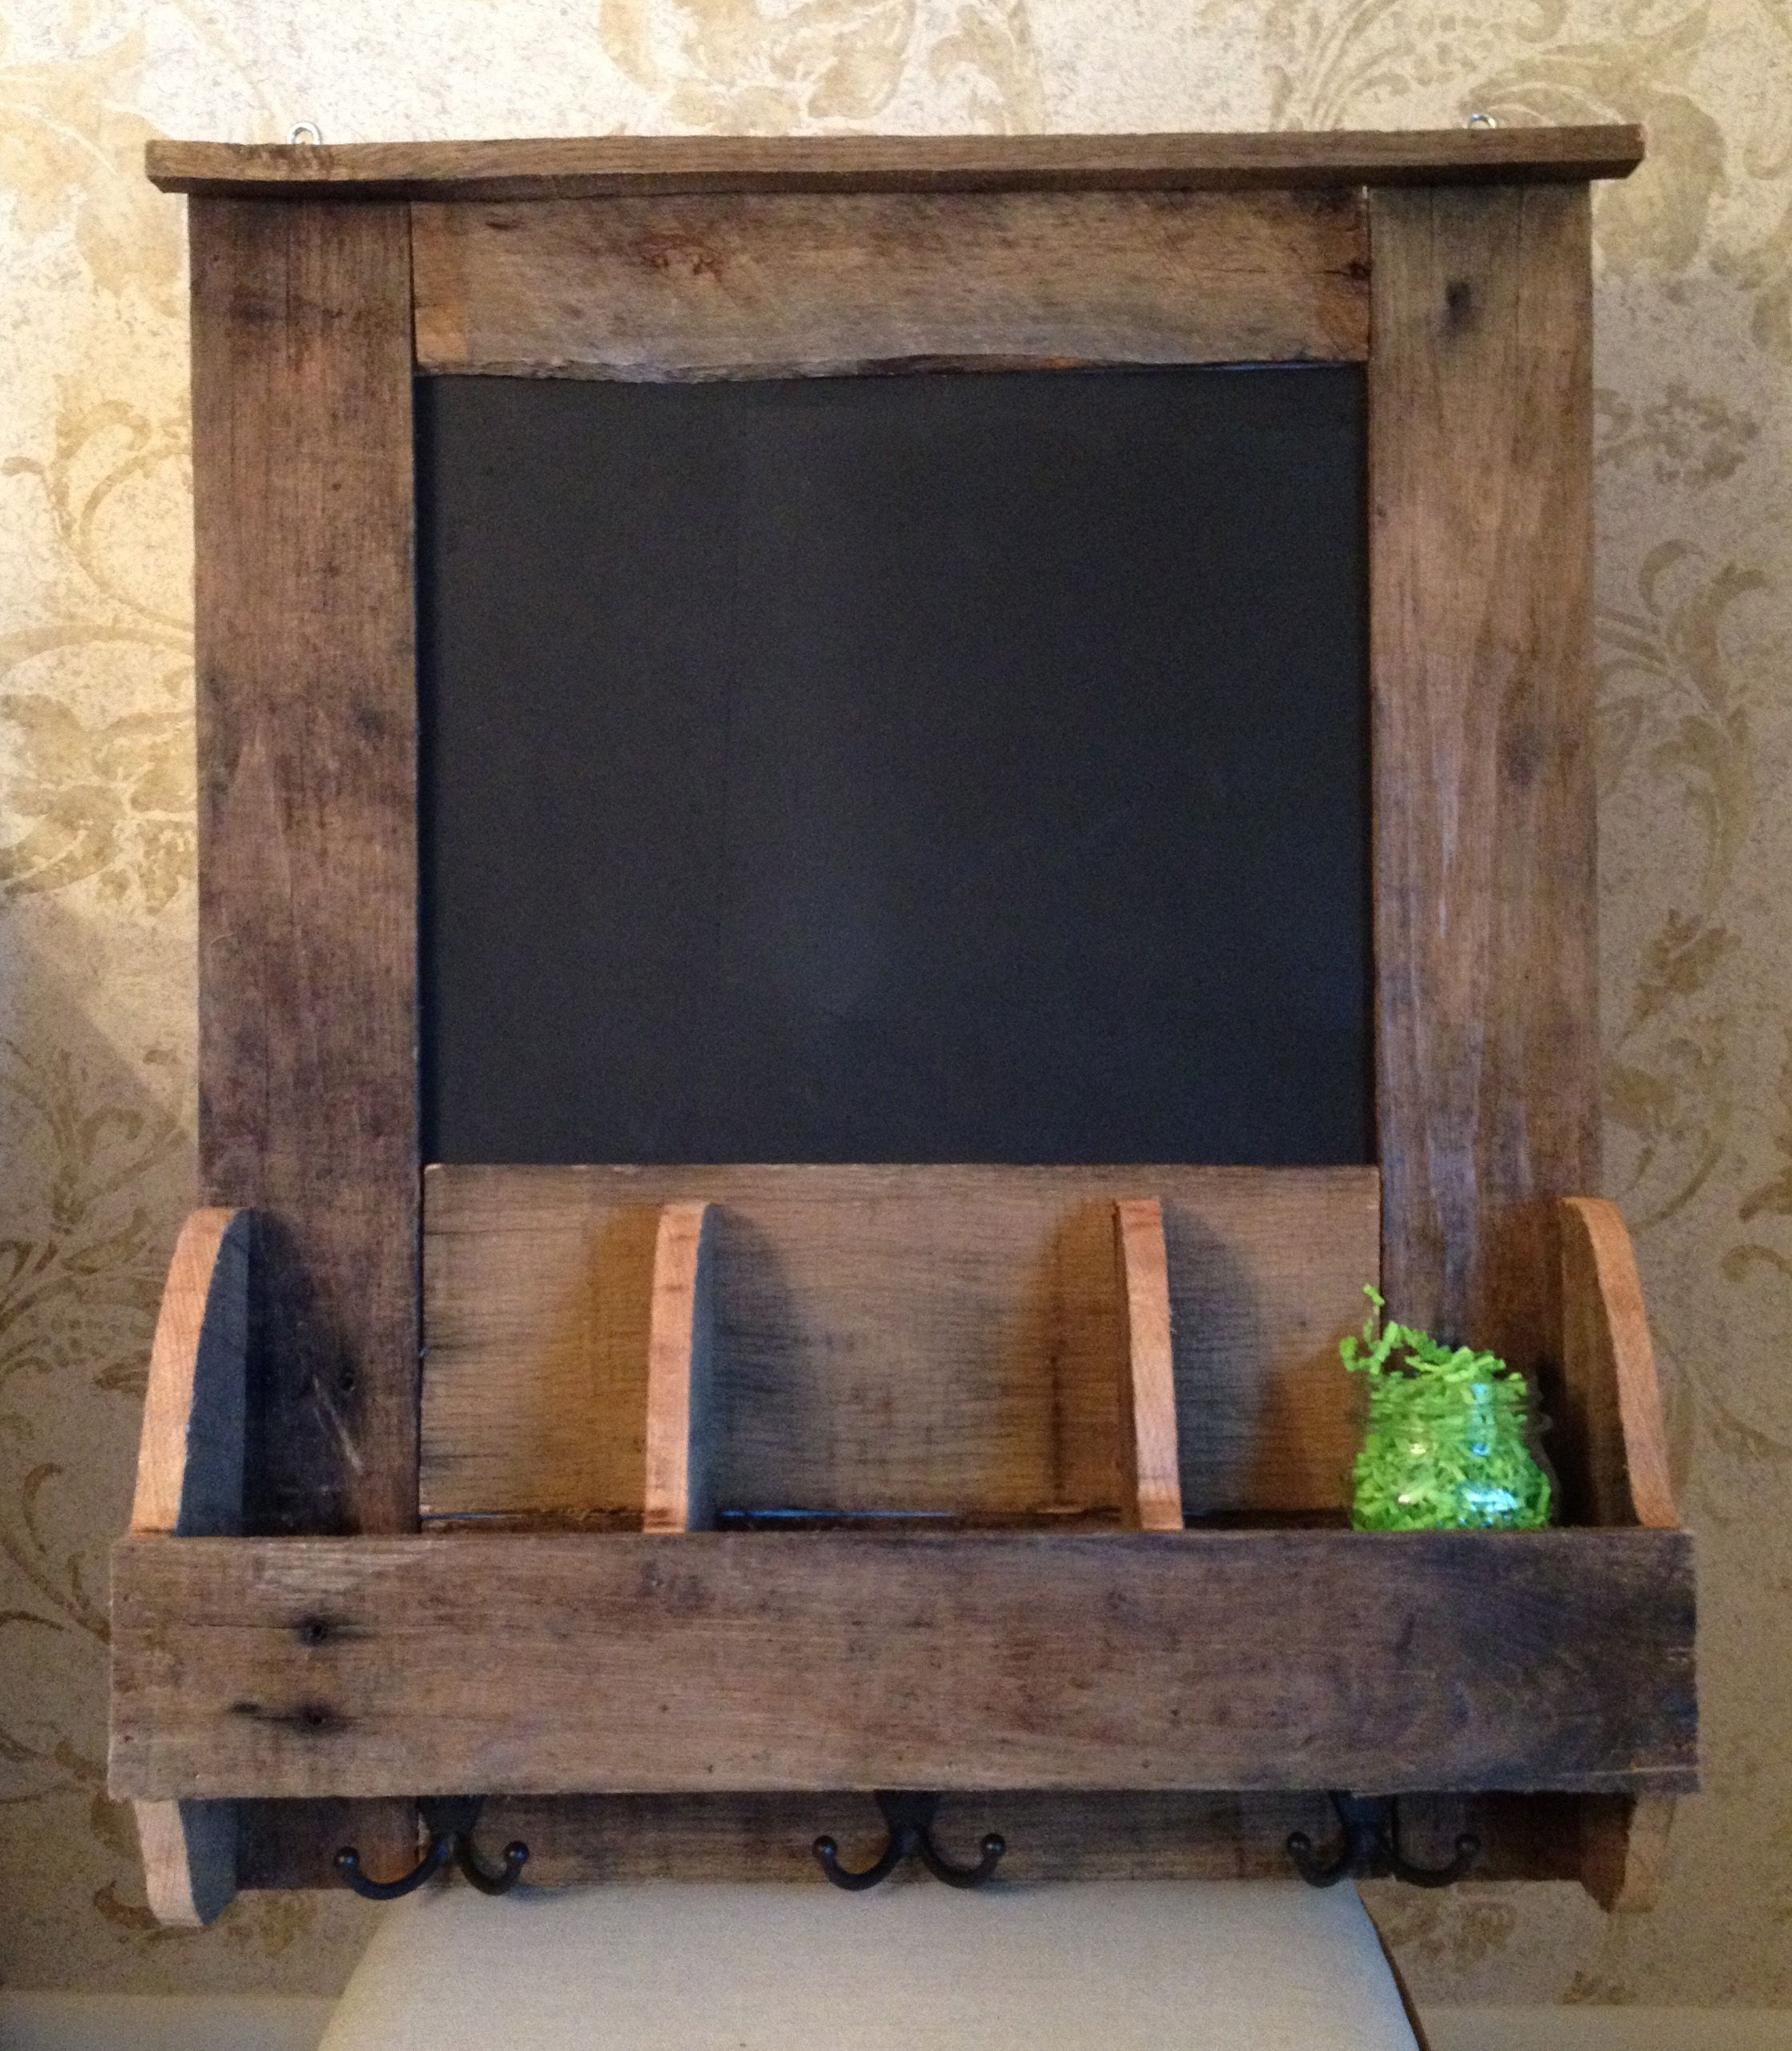 Pallet Wood Backsplash Reclaimed Pallet Wood Chalkboard Organizer Ideas Pinterest